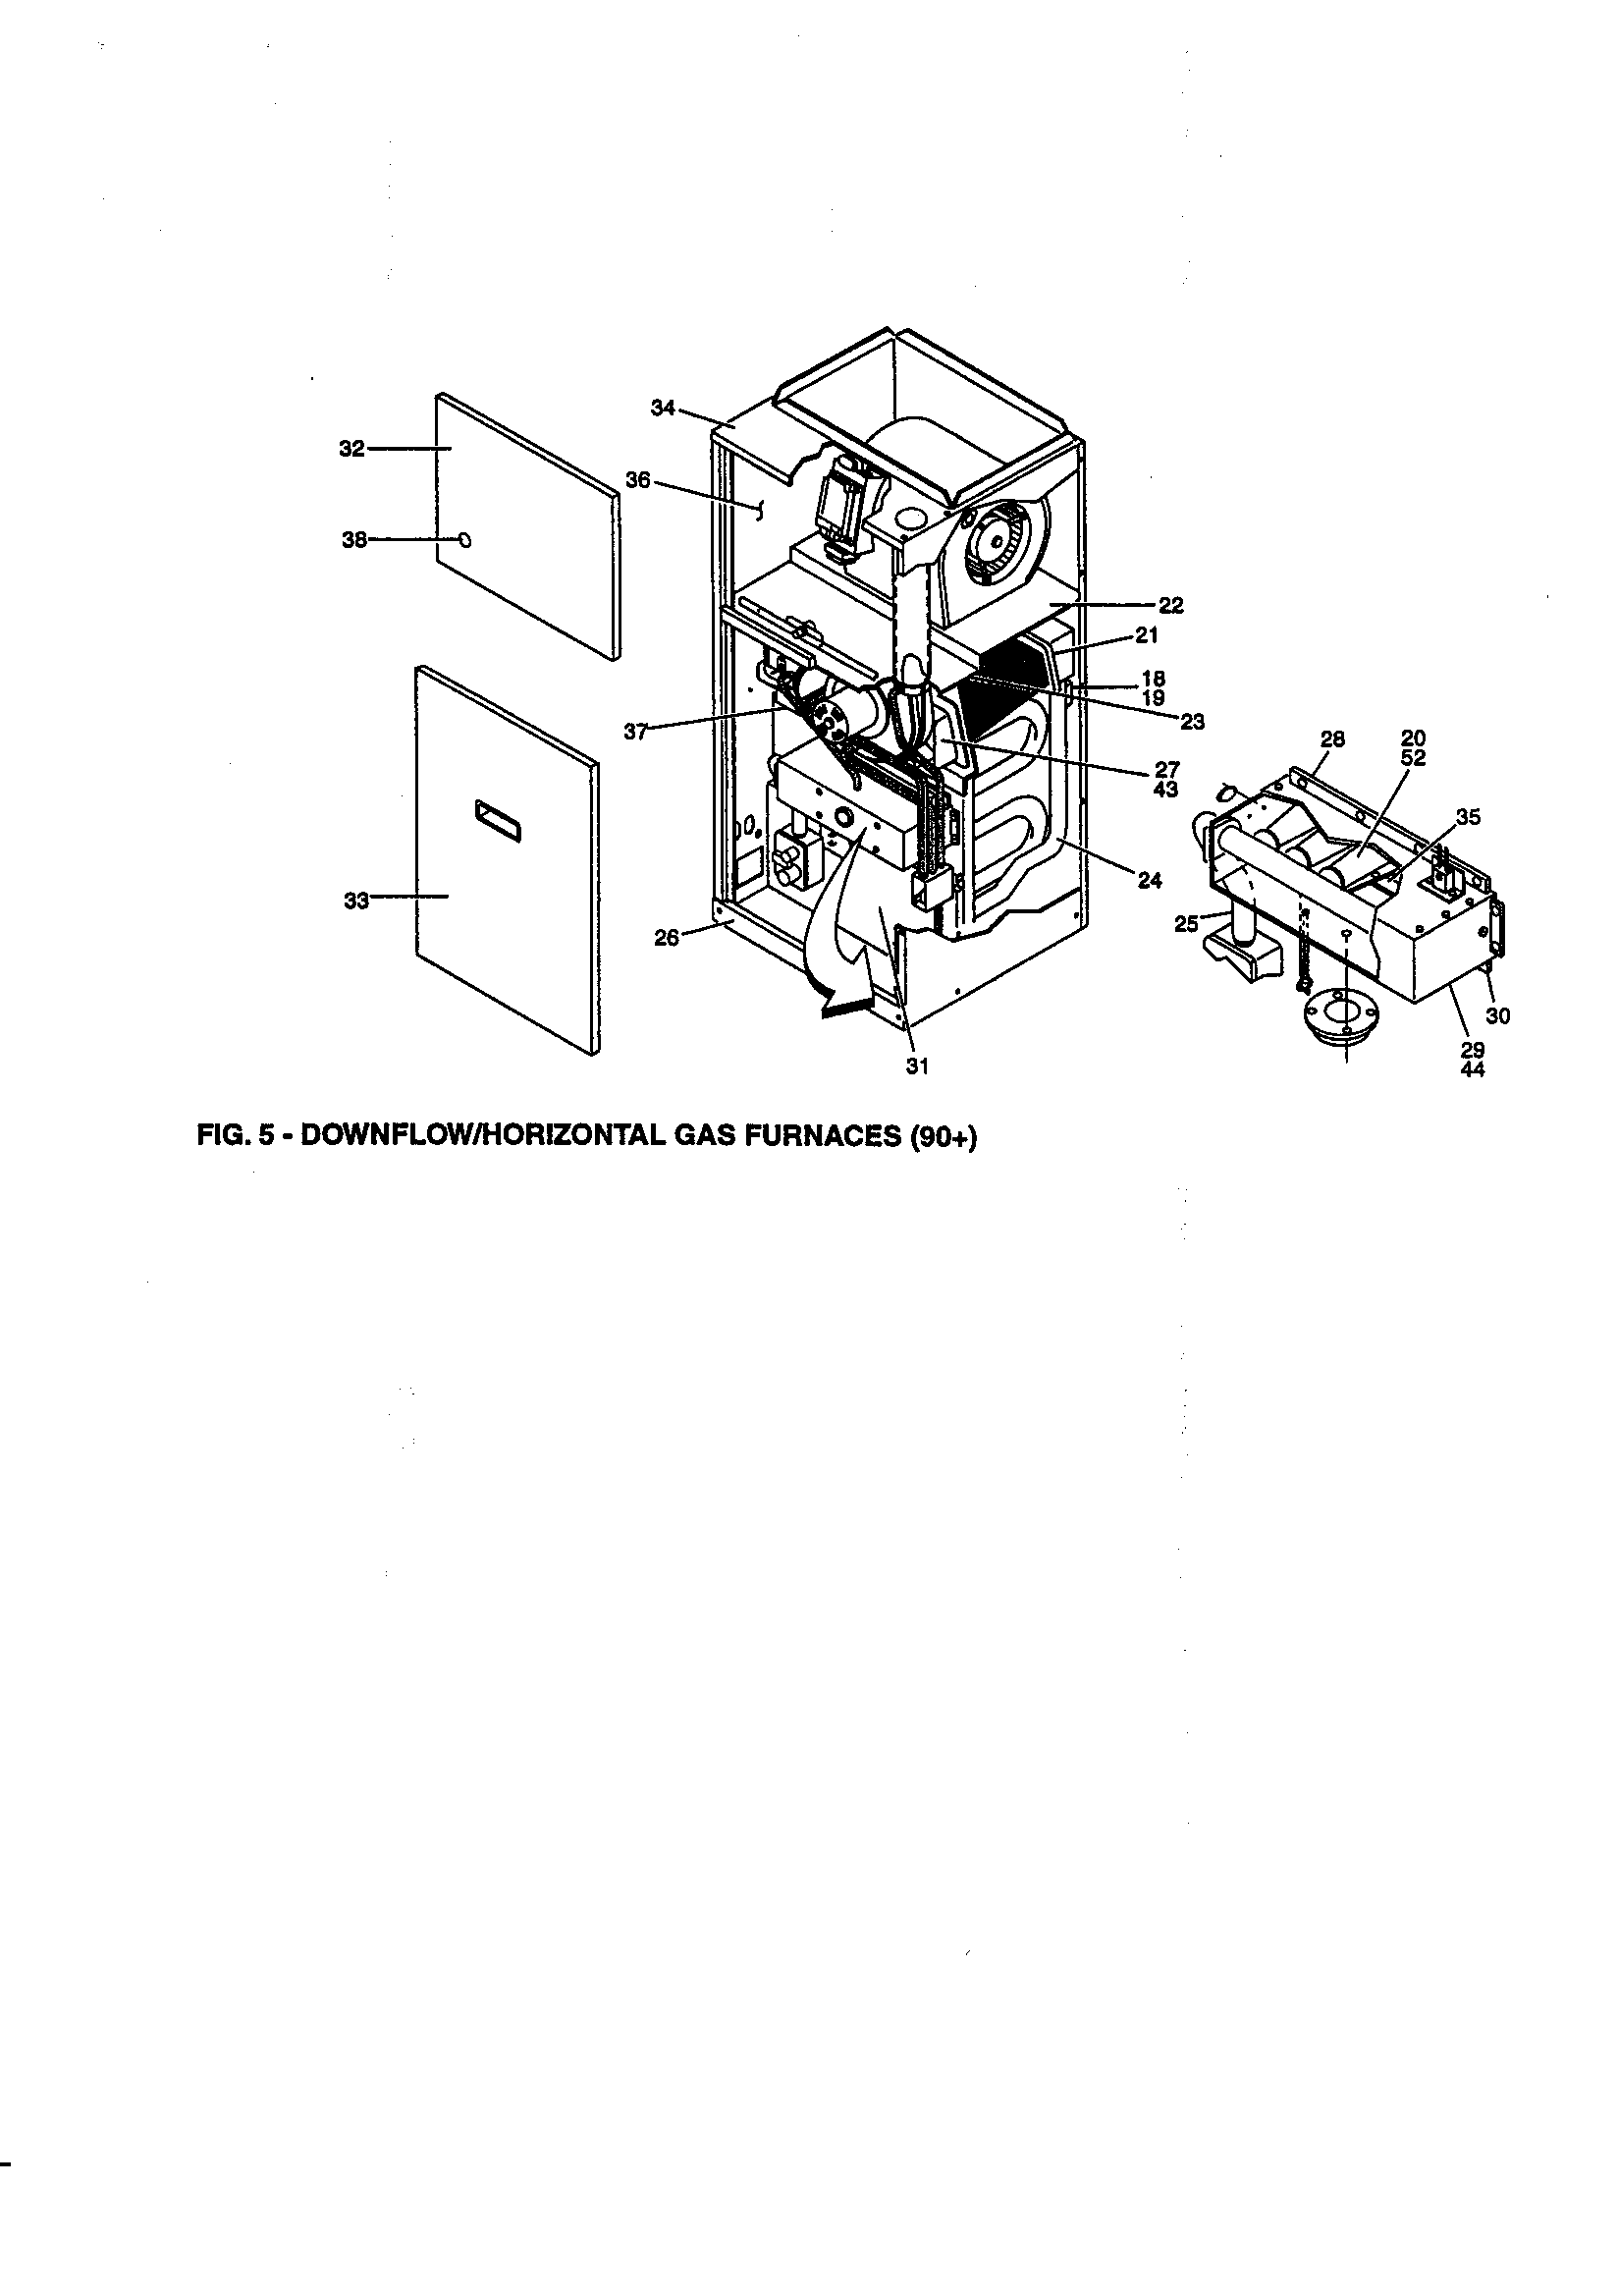 hight resolution of looking for york model p3dhd20n11201 furnace repair replacement parts york furnace parts diagram